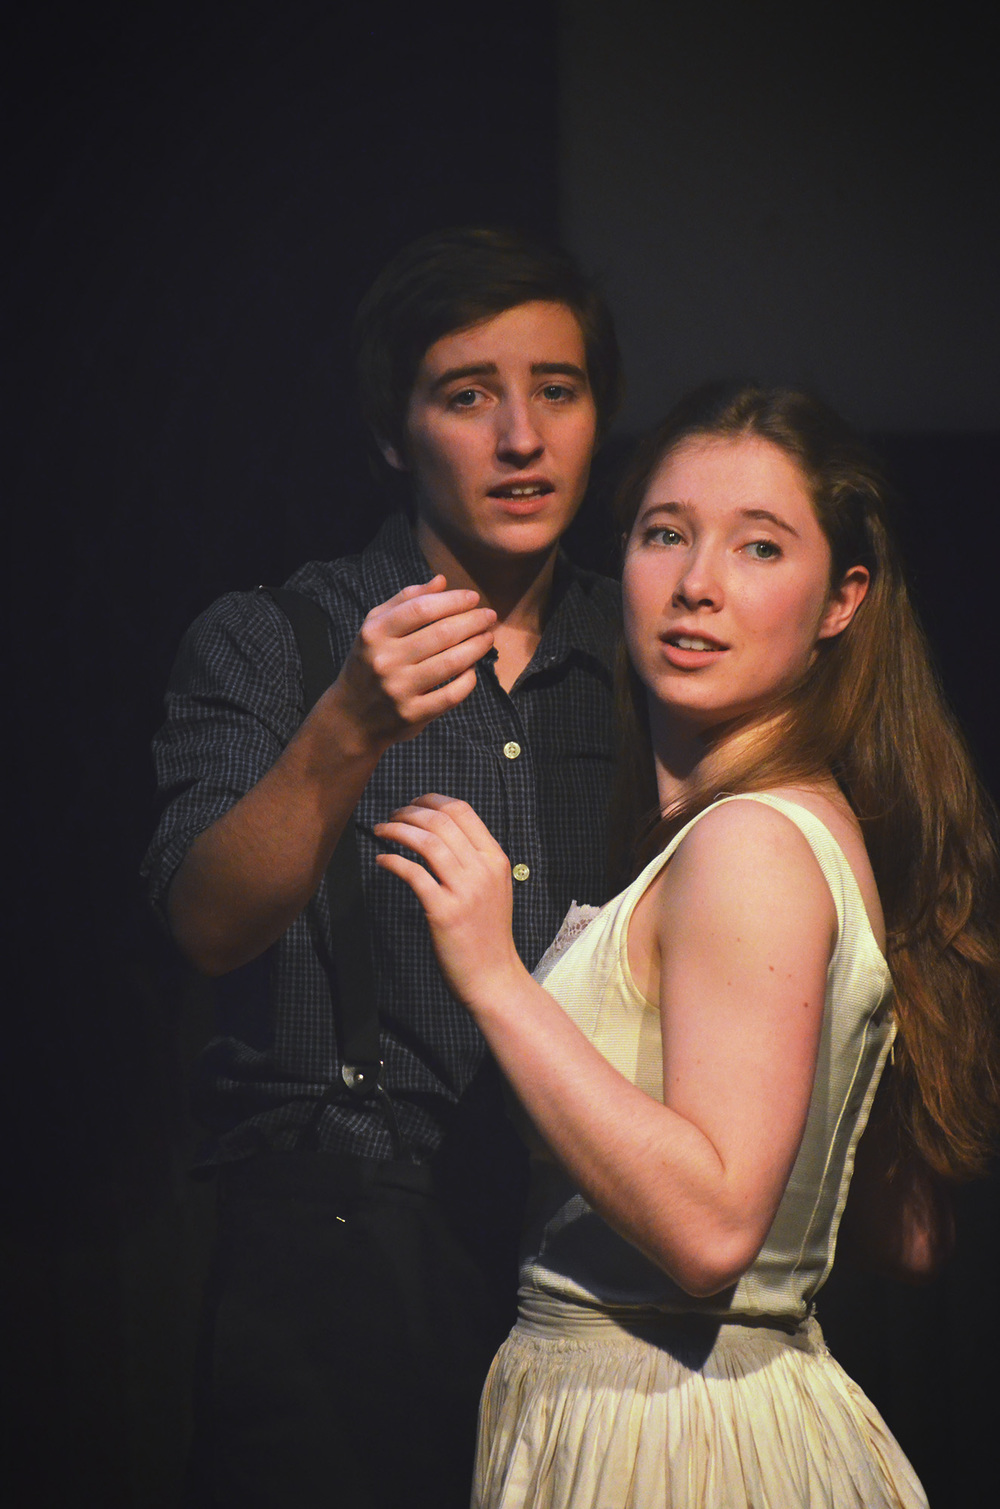 Romeo and Juliet in  Romeo and Juliet  (The Wellesley College Shakespeare Society, 2013)